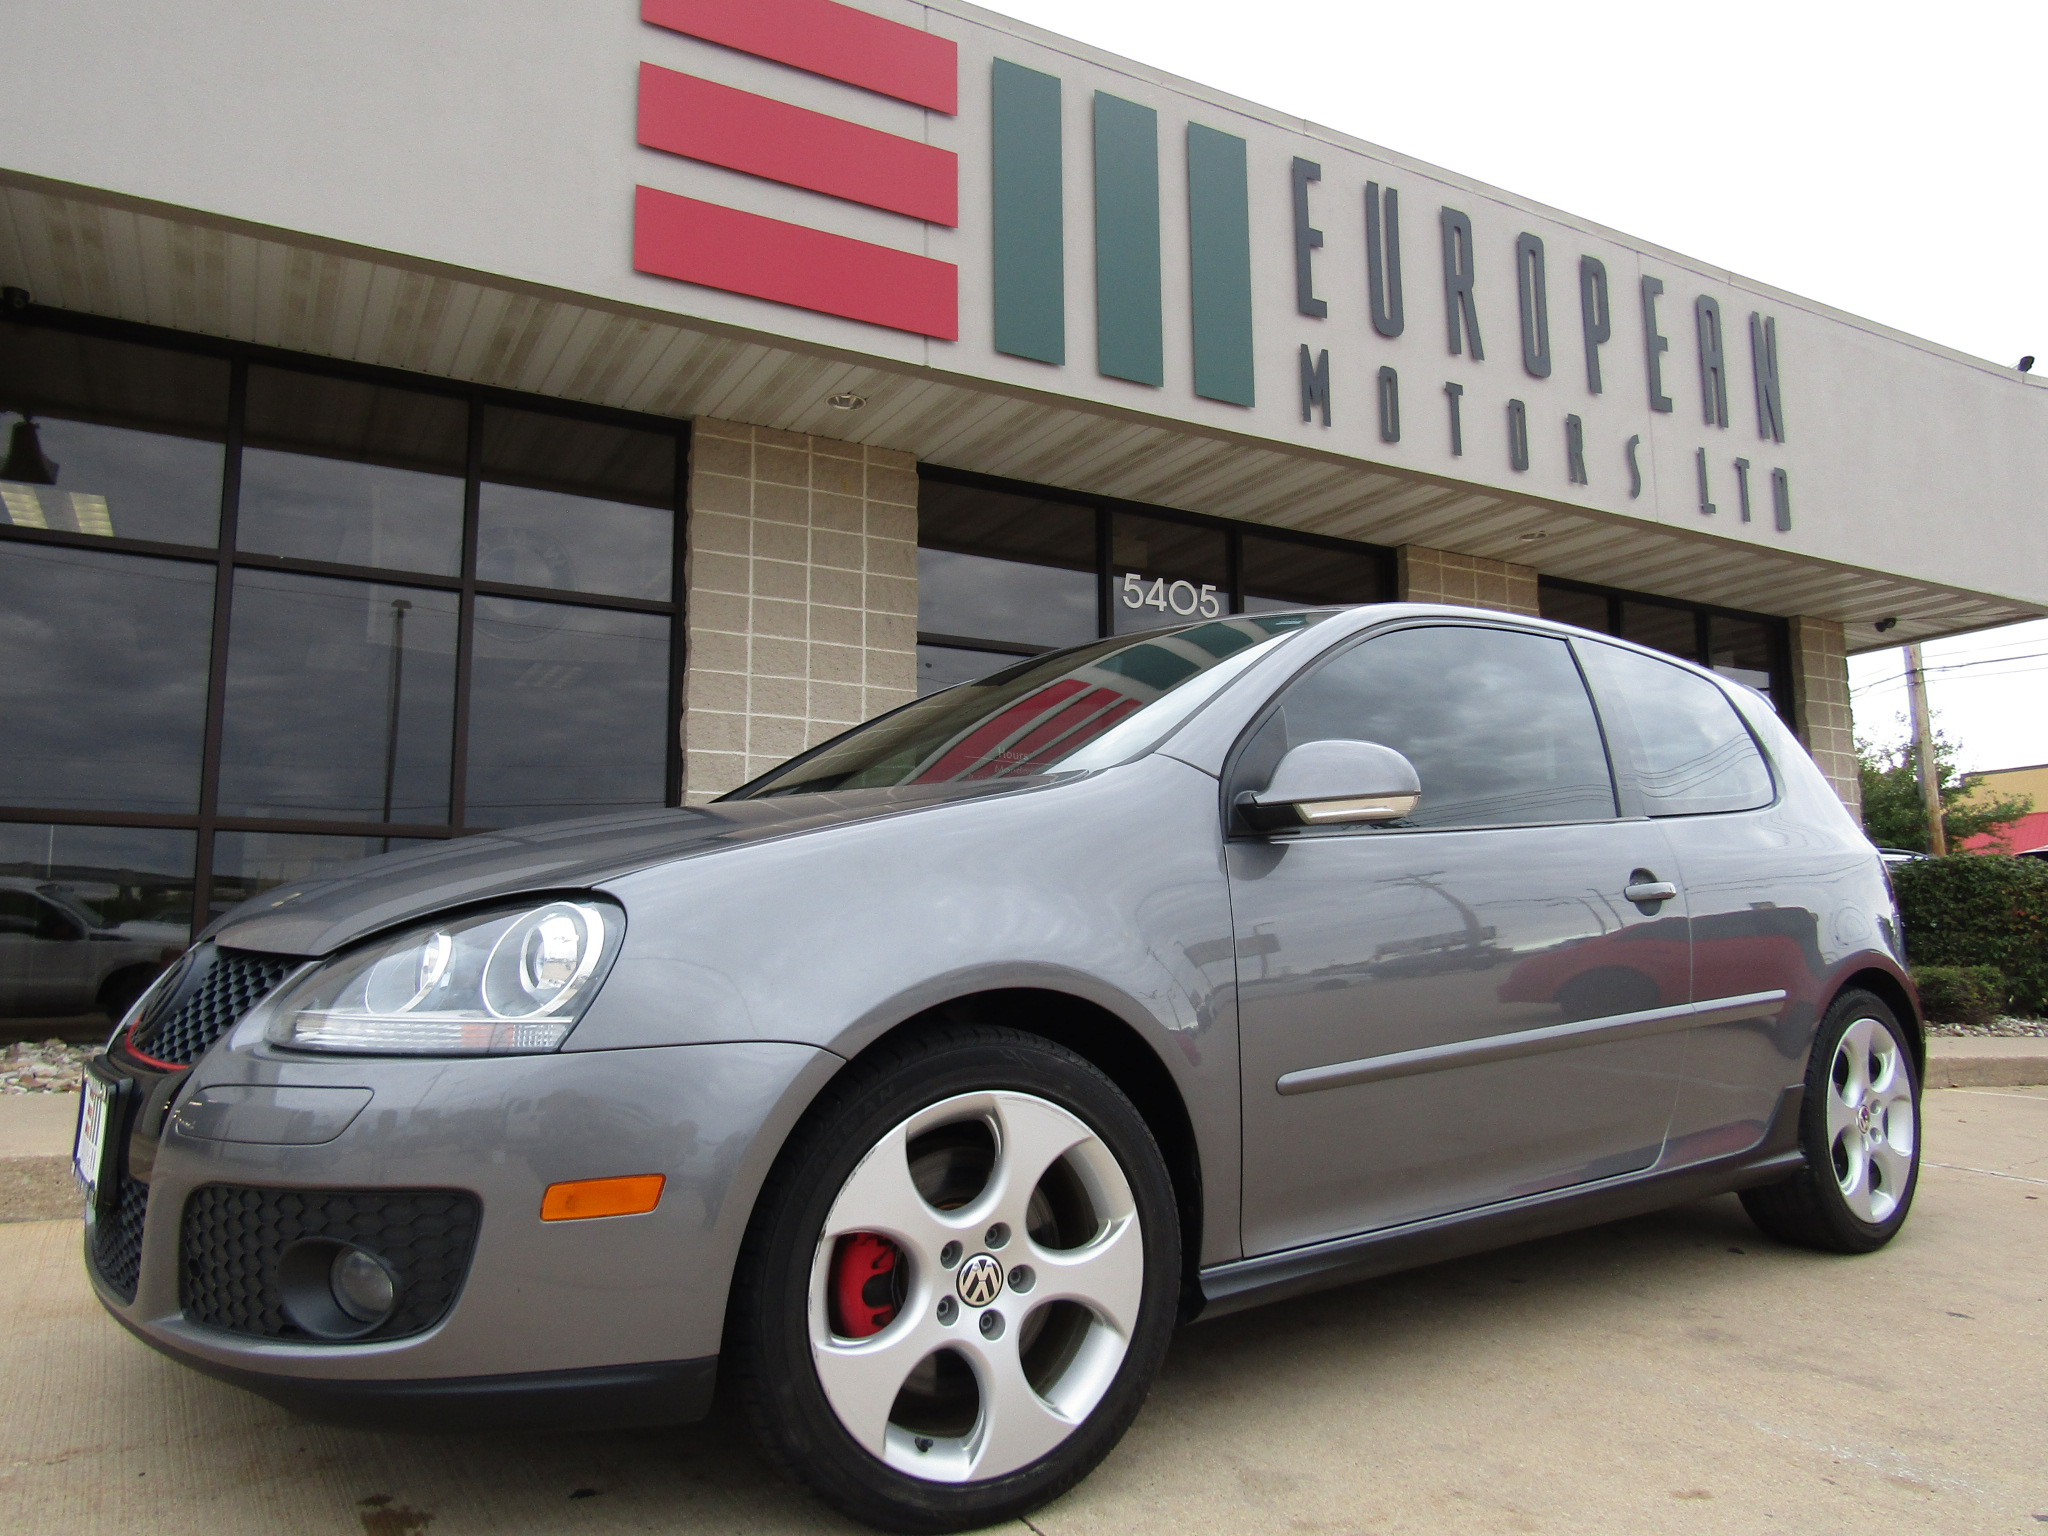 2008 Volkswagen GTI. APR Exhaust, 6-Speed Manual